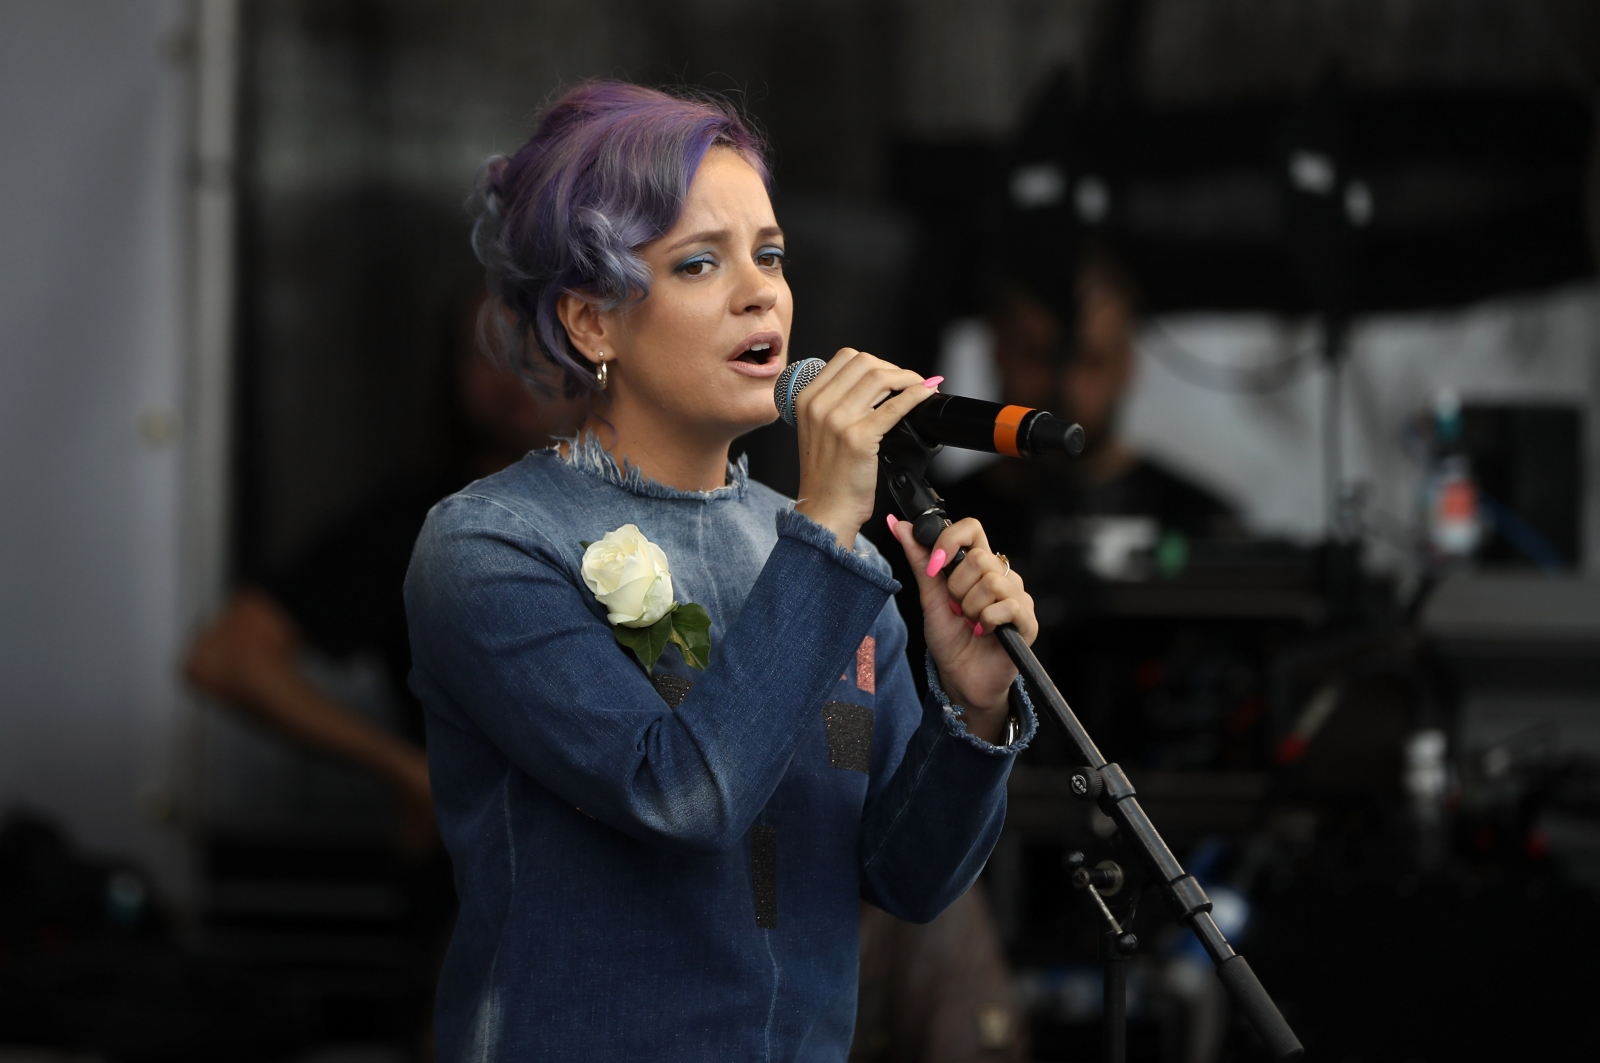 Lily Allen says London... Lily Allen